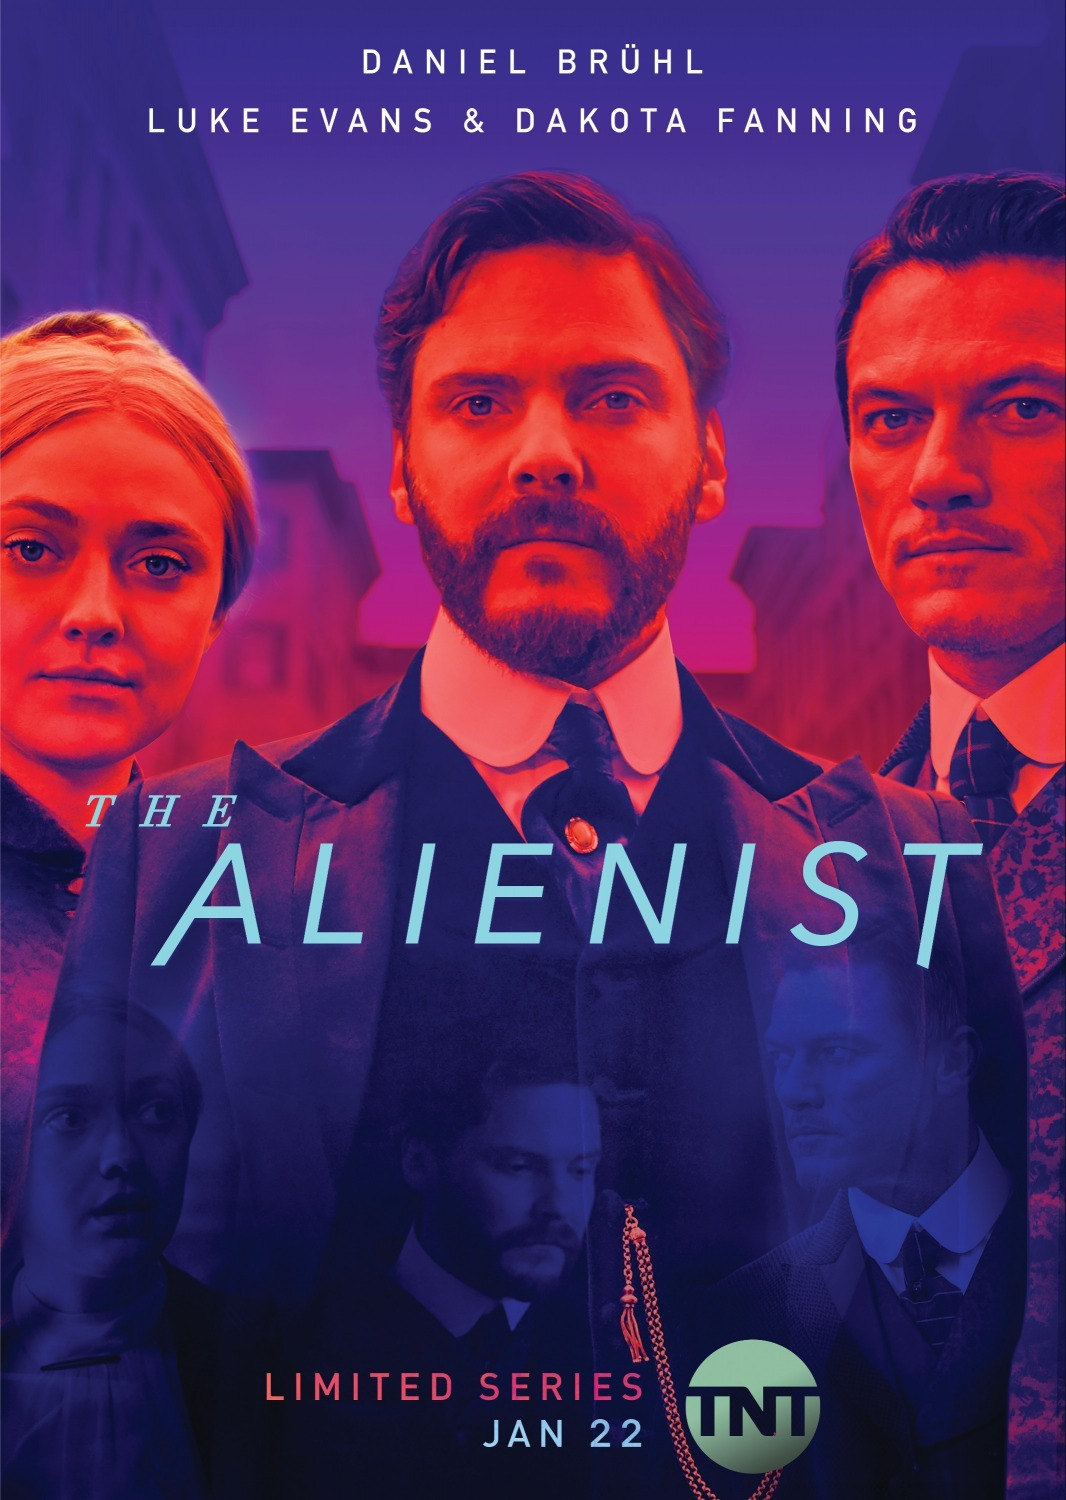 The Alienist S02 2020 Hindi Complete Netflix Web Series 720p HDRip 2670MB Download